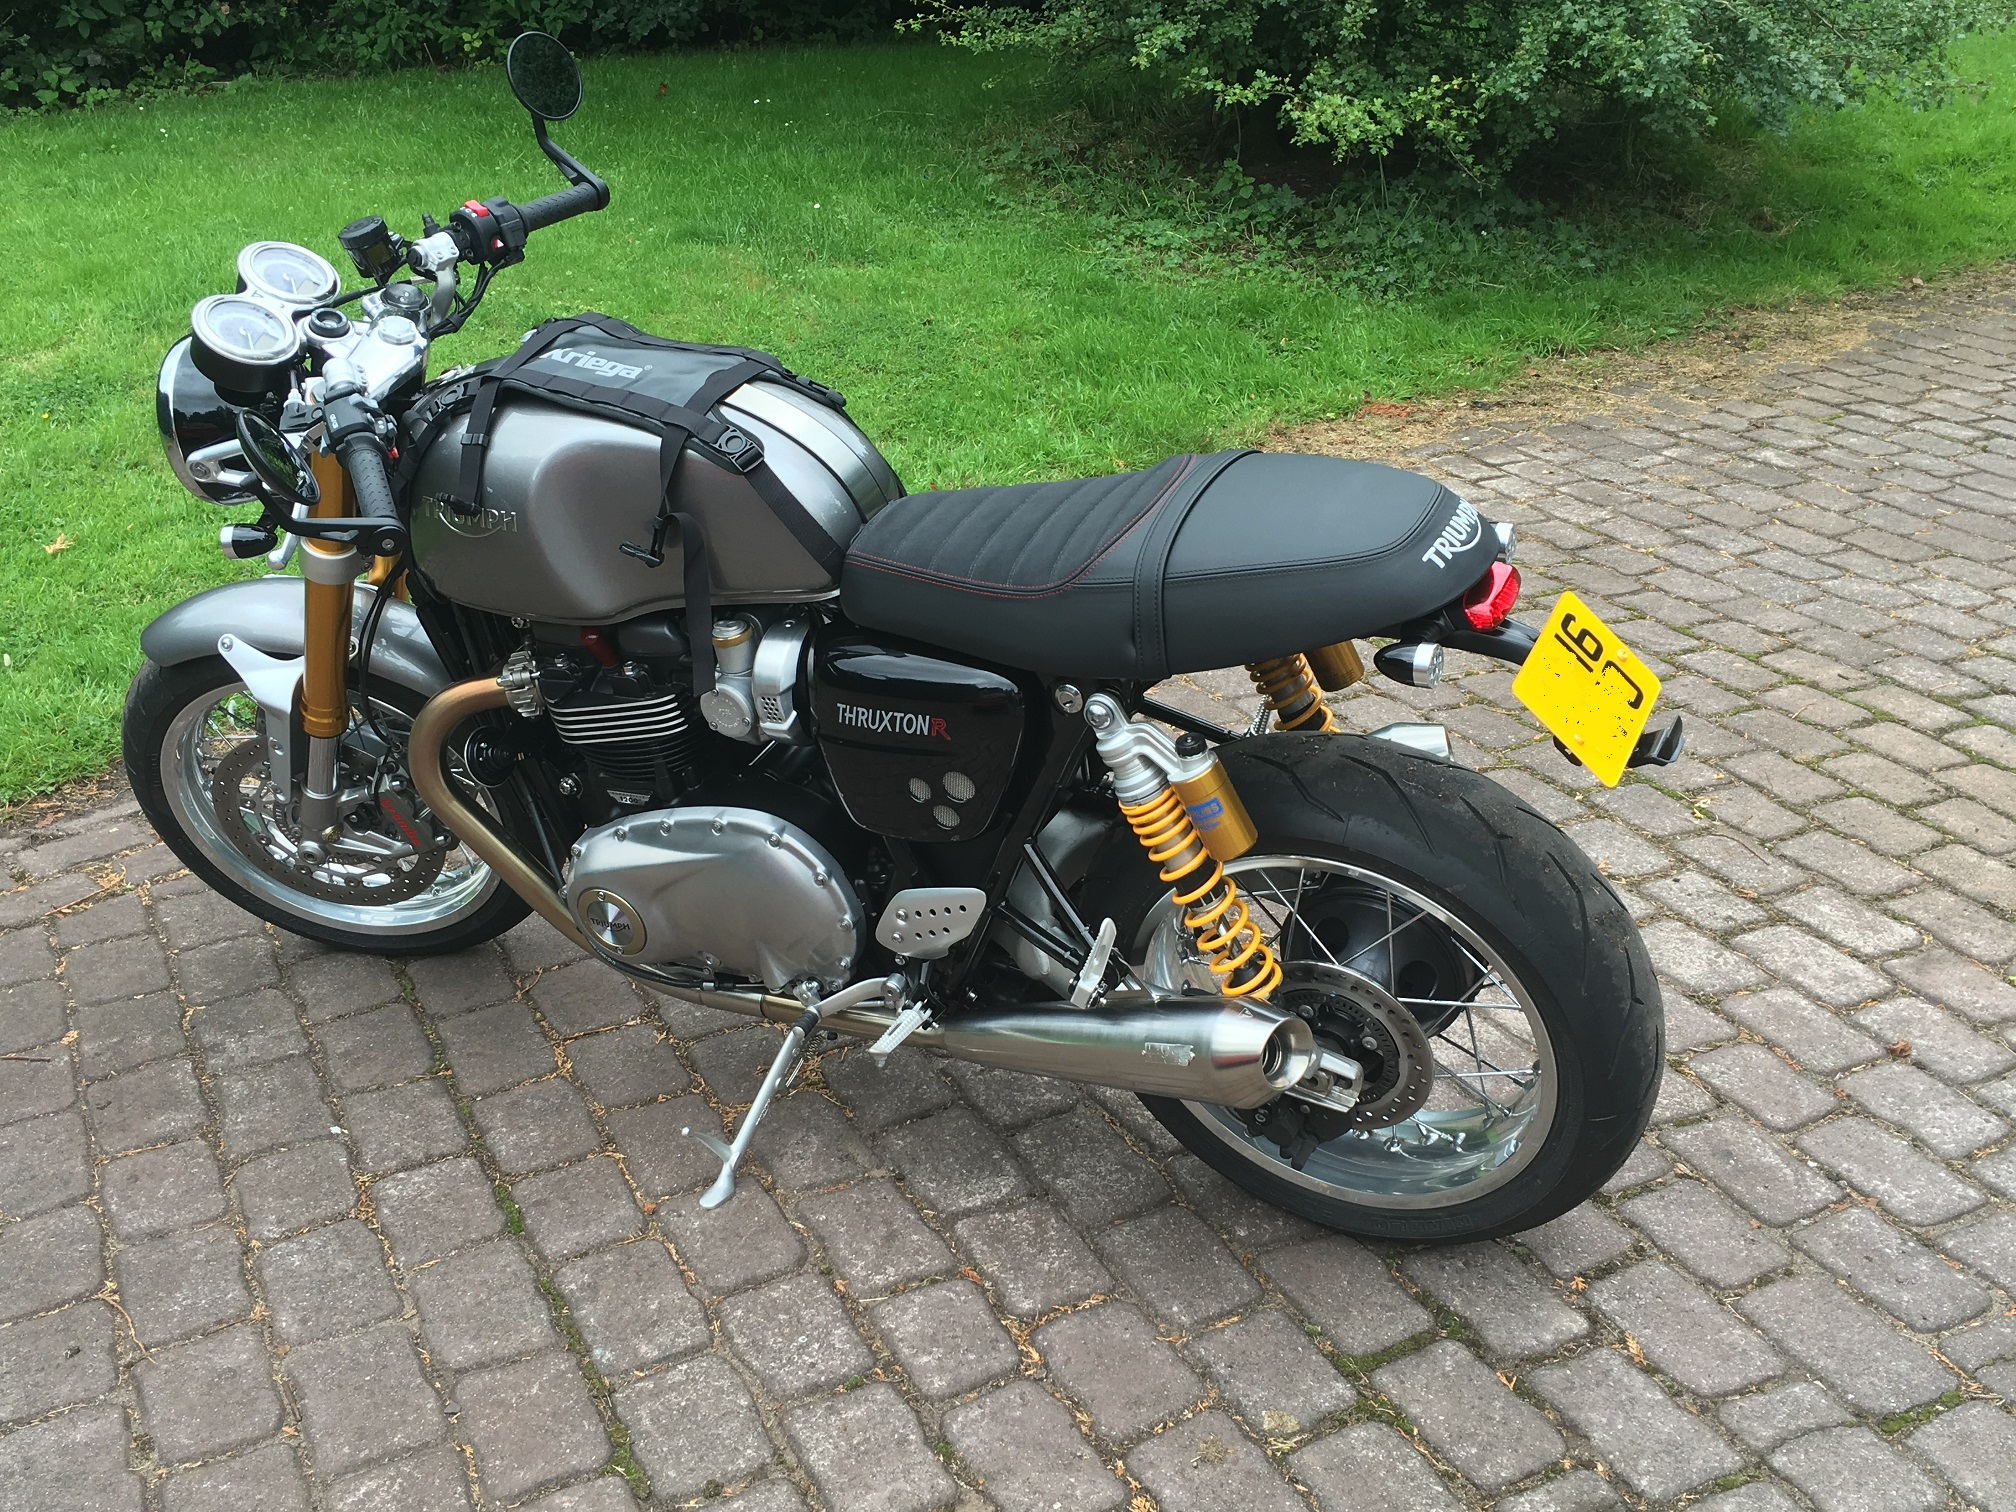 thruxton r dual comfort seat hardly used for sale the triumph forum. Black Bedroom Furniture Sets. Home Design Ideas